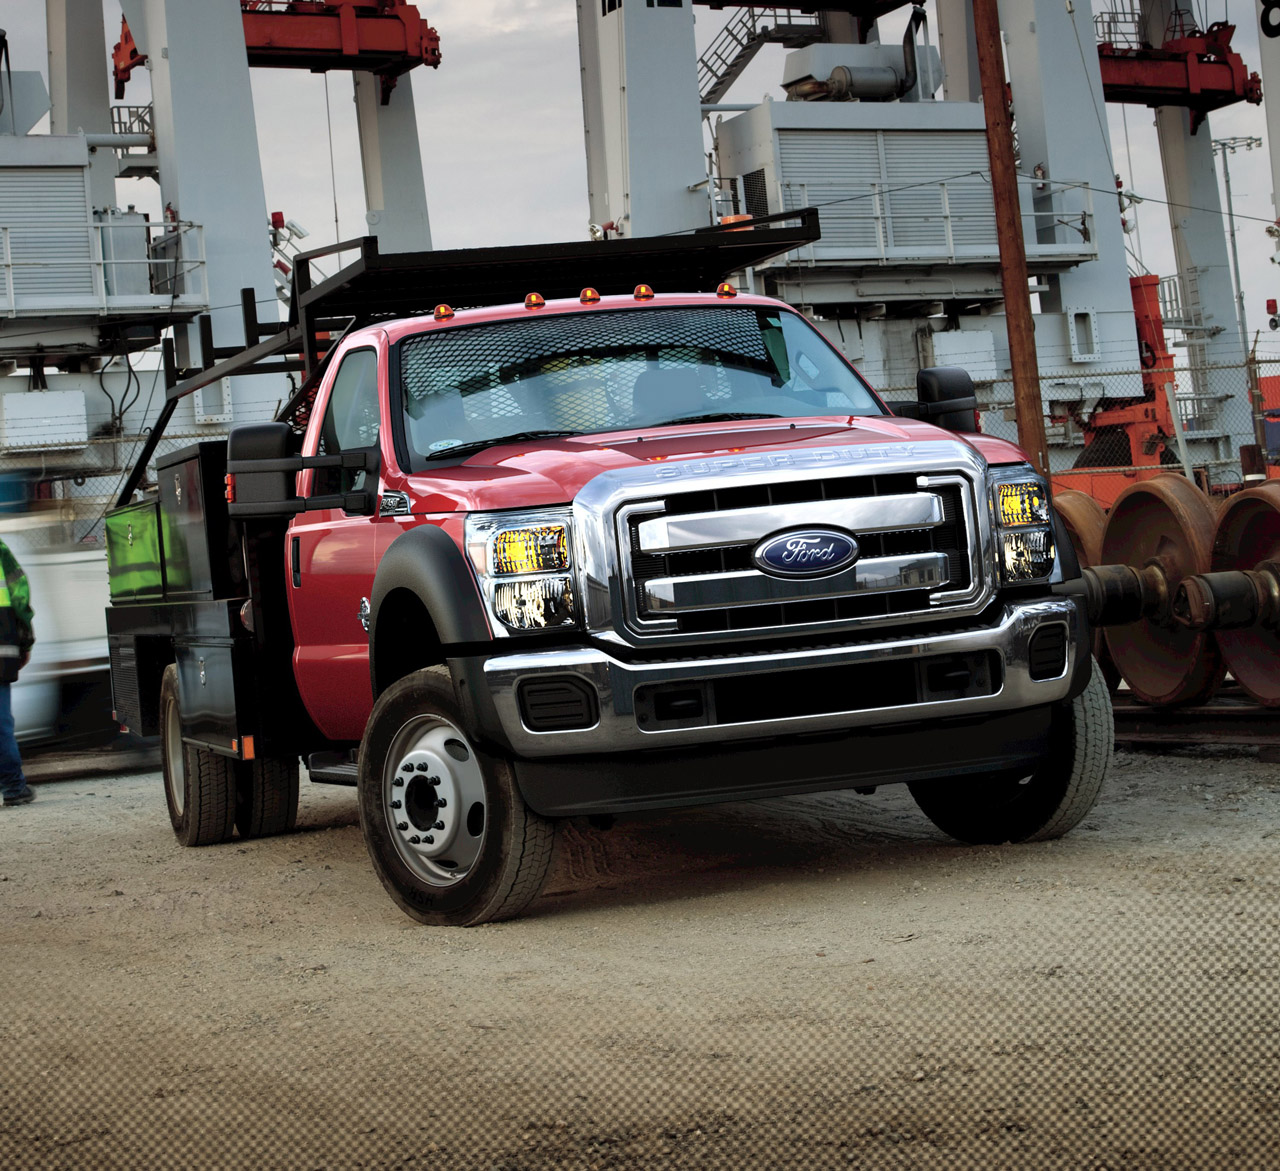 Ford f-series 2015 photo - 2